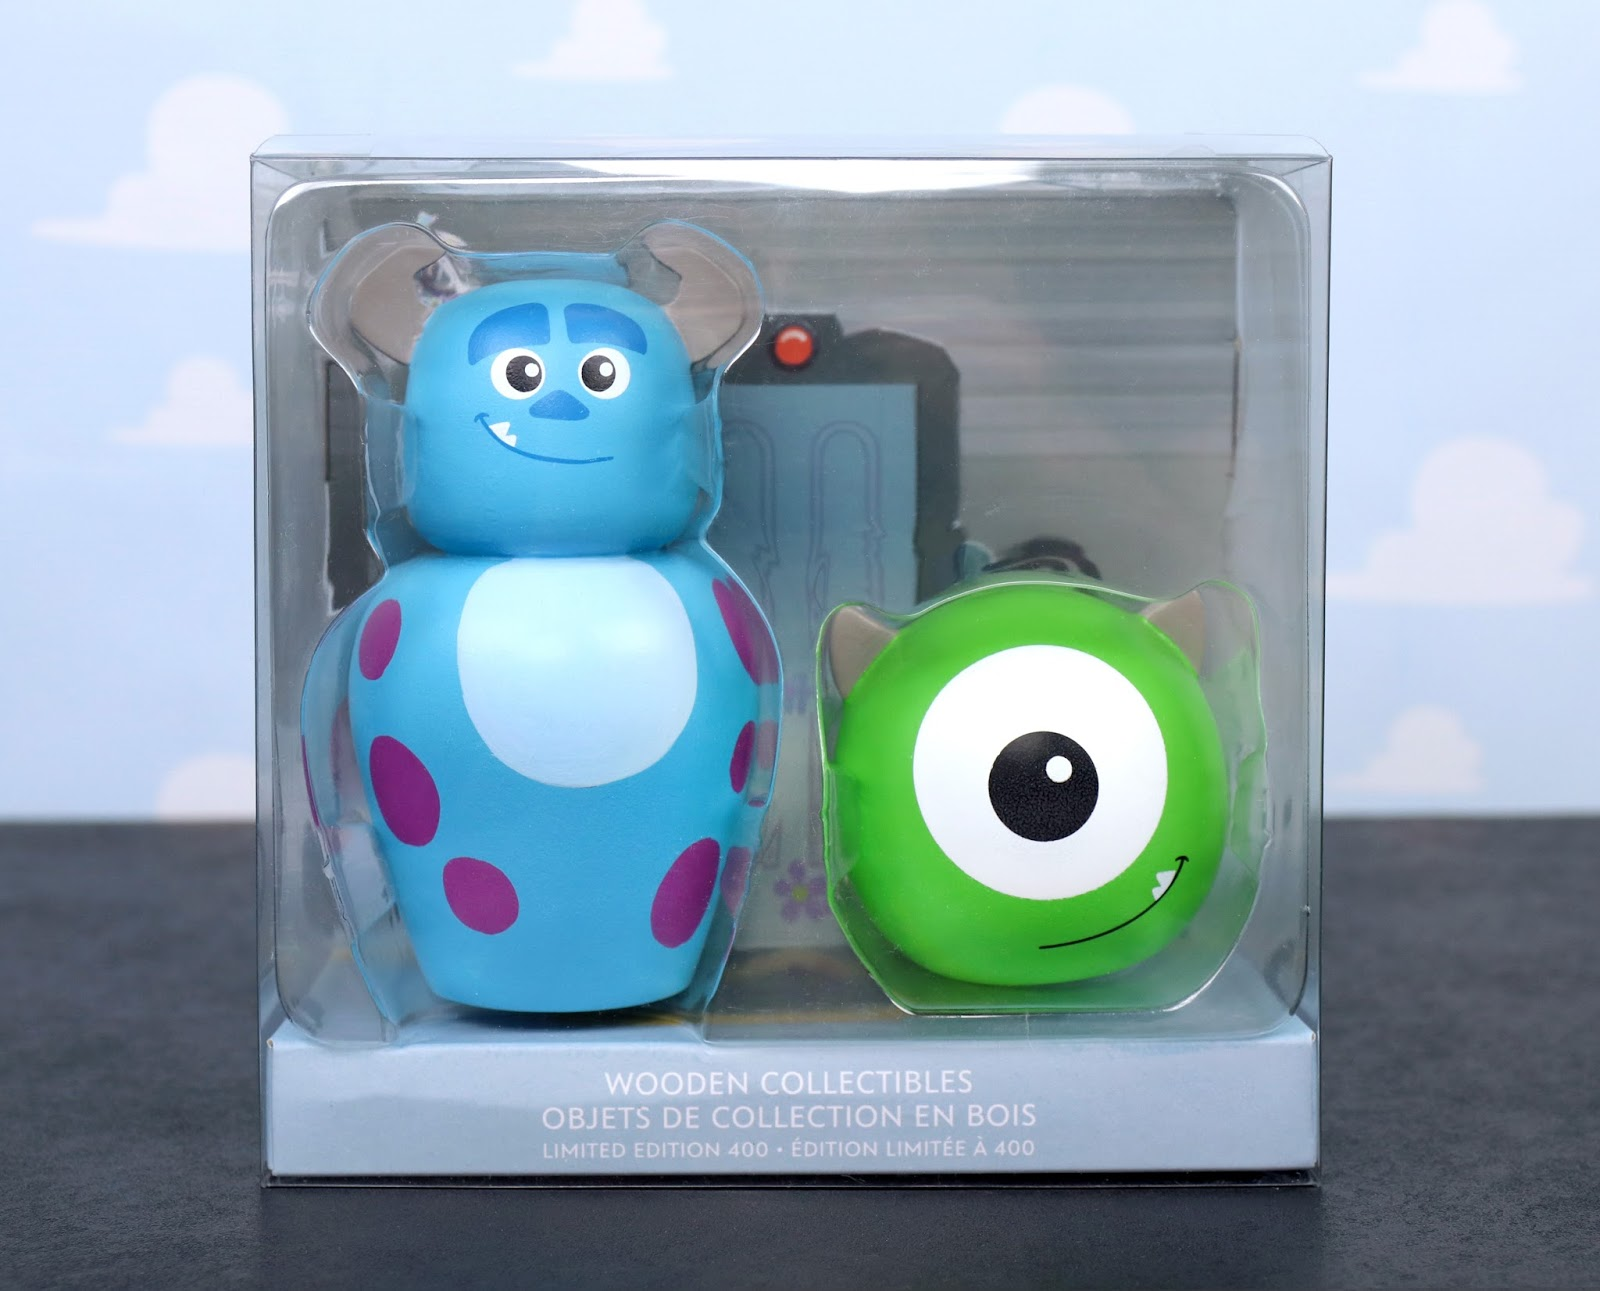 Monsters Inc Mike and Sulley Wooden Collectibles Limited Edition